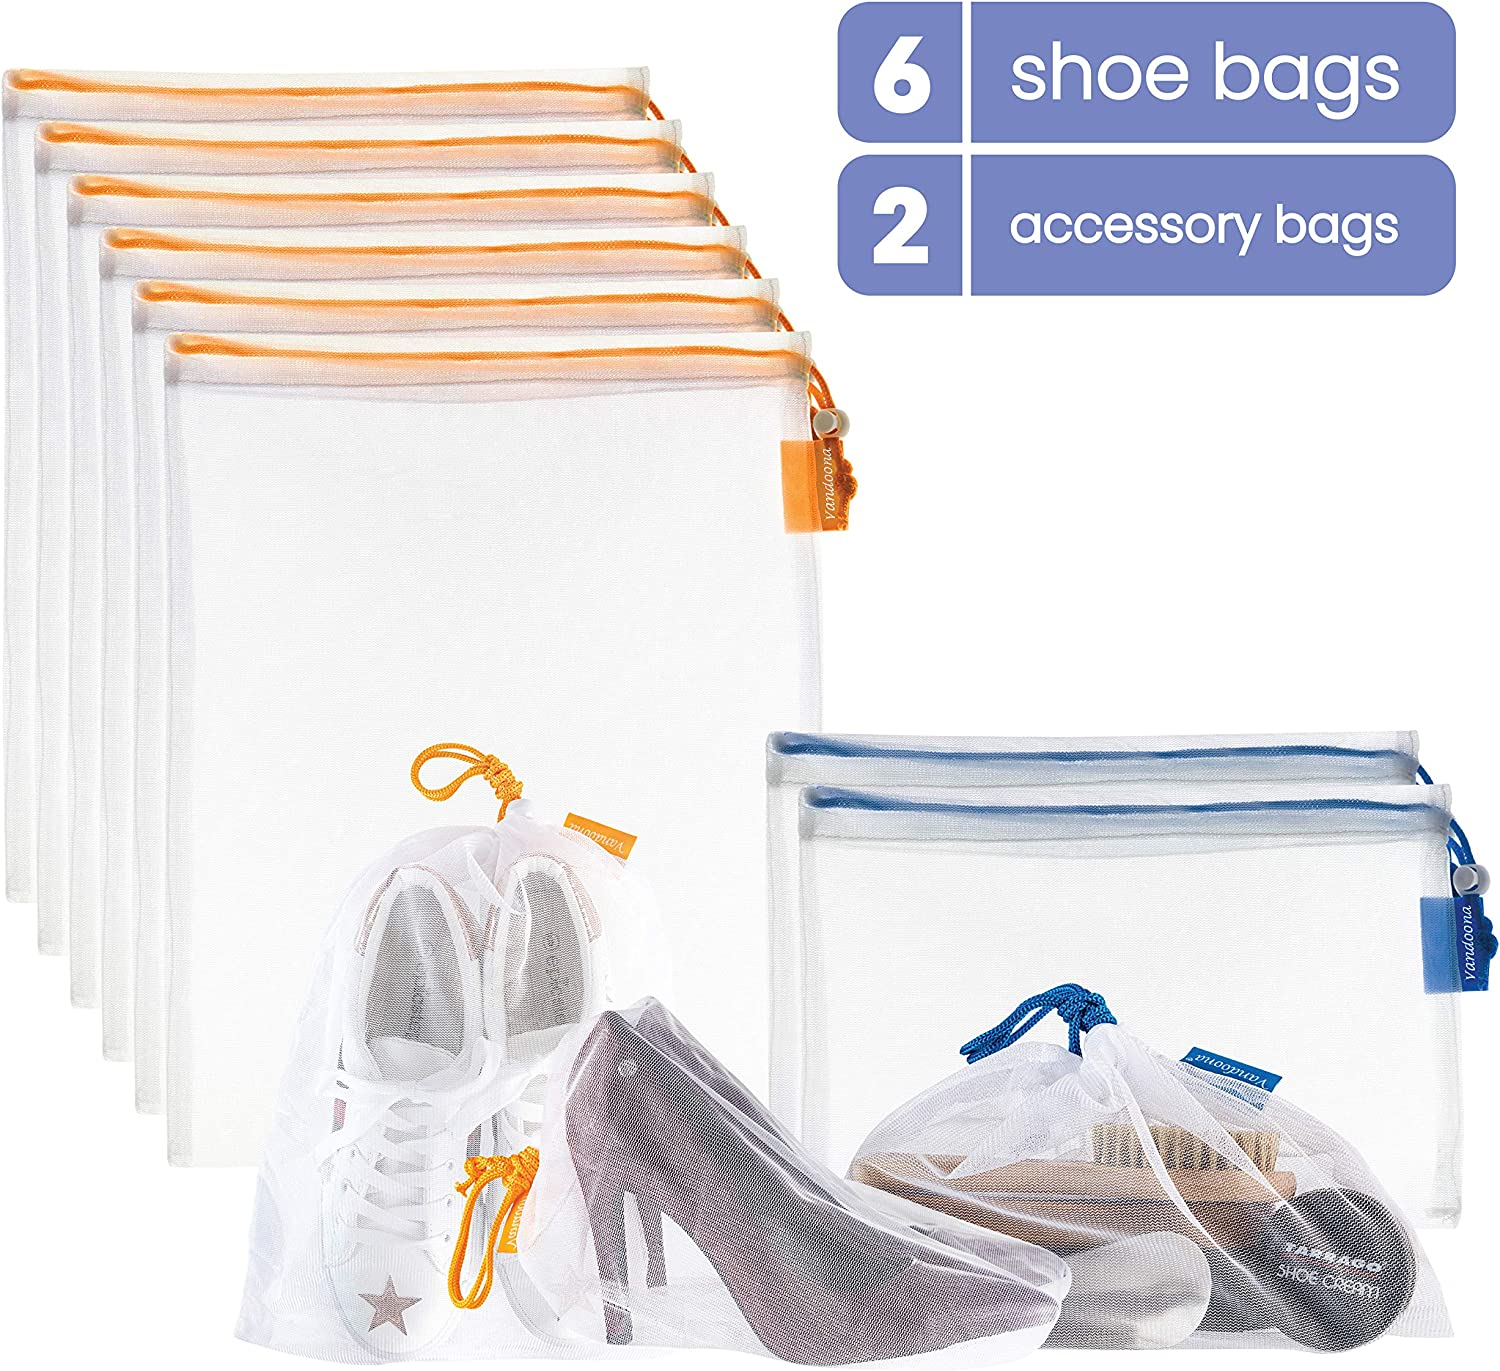 VANDOONA Shoe Bag Set – Mesh Shoe Storage Bags & Accessories Bag for Travel, Home Organization, Sports, Outdoors, Gym. Transparent Color-Coded Drawstrings by Size S & M (6 Medium, 2 Small)